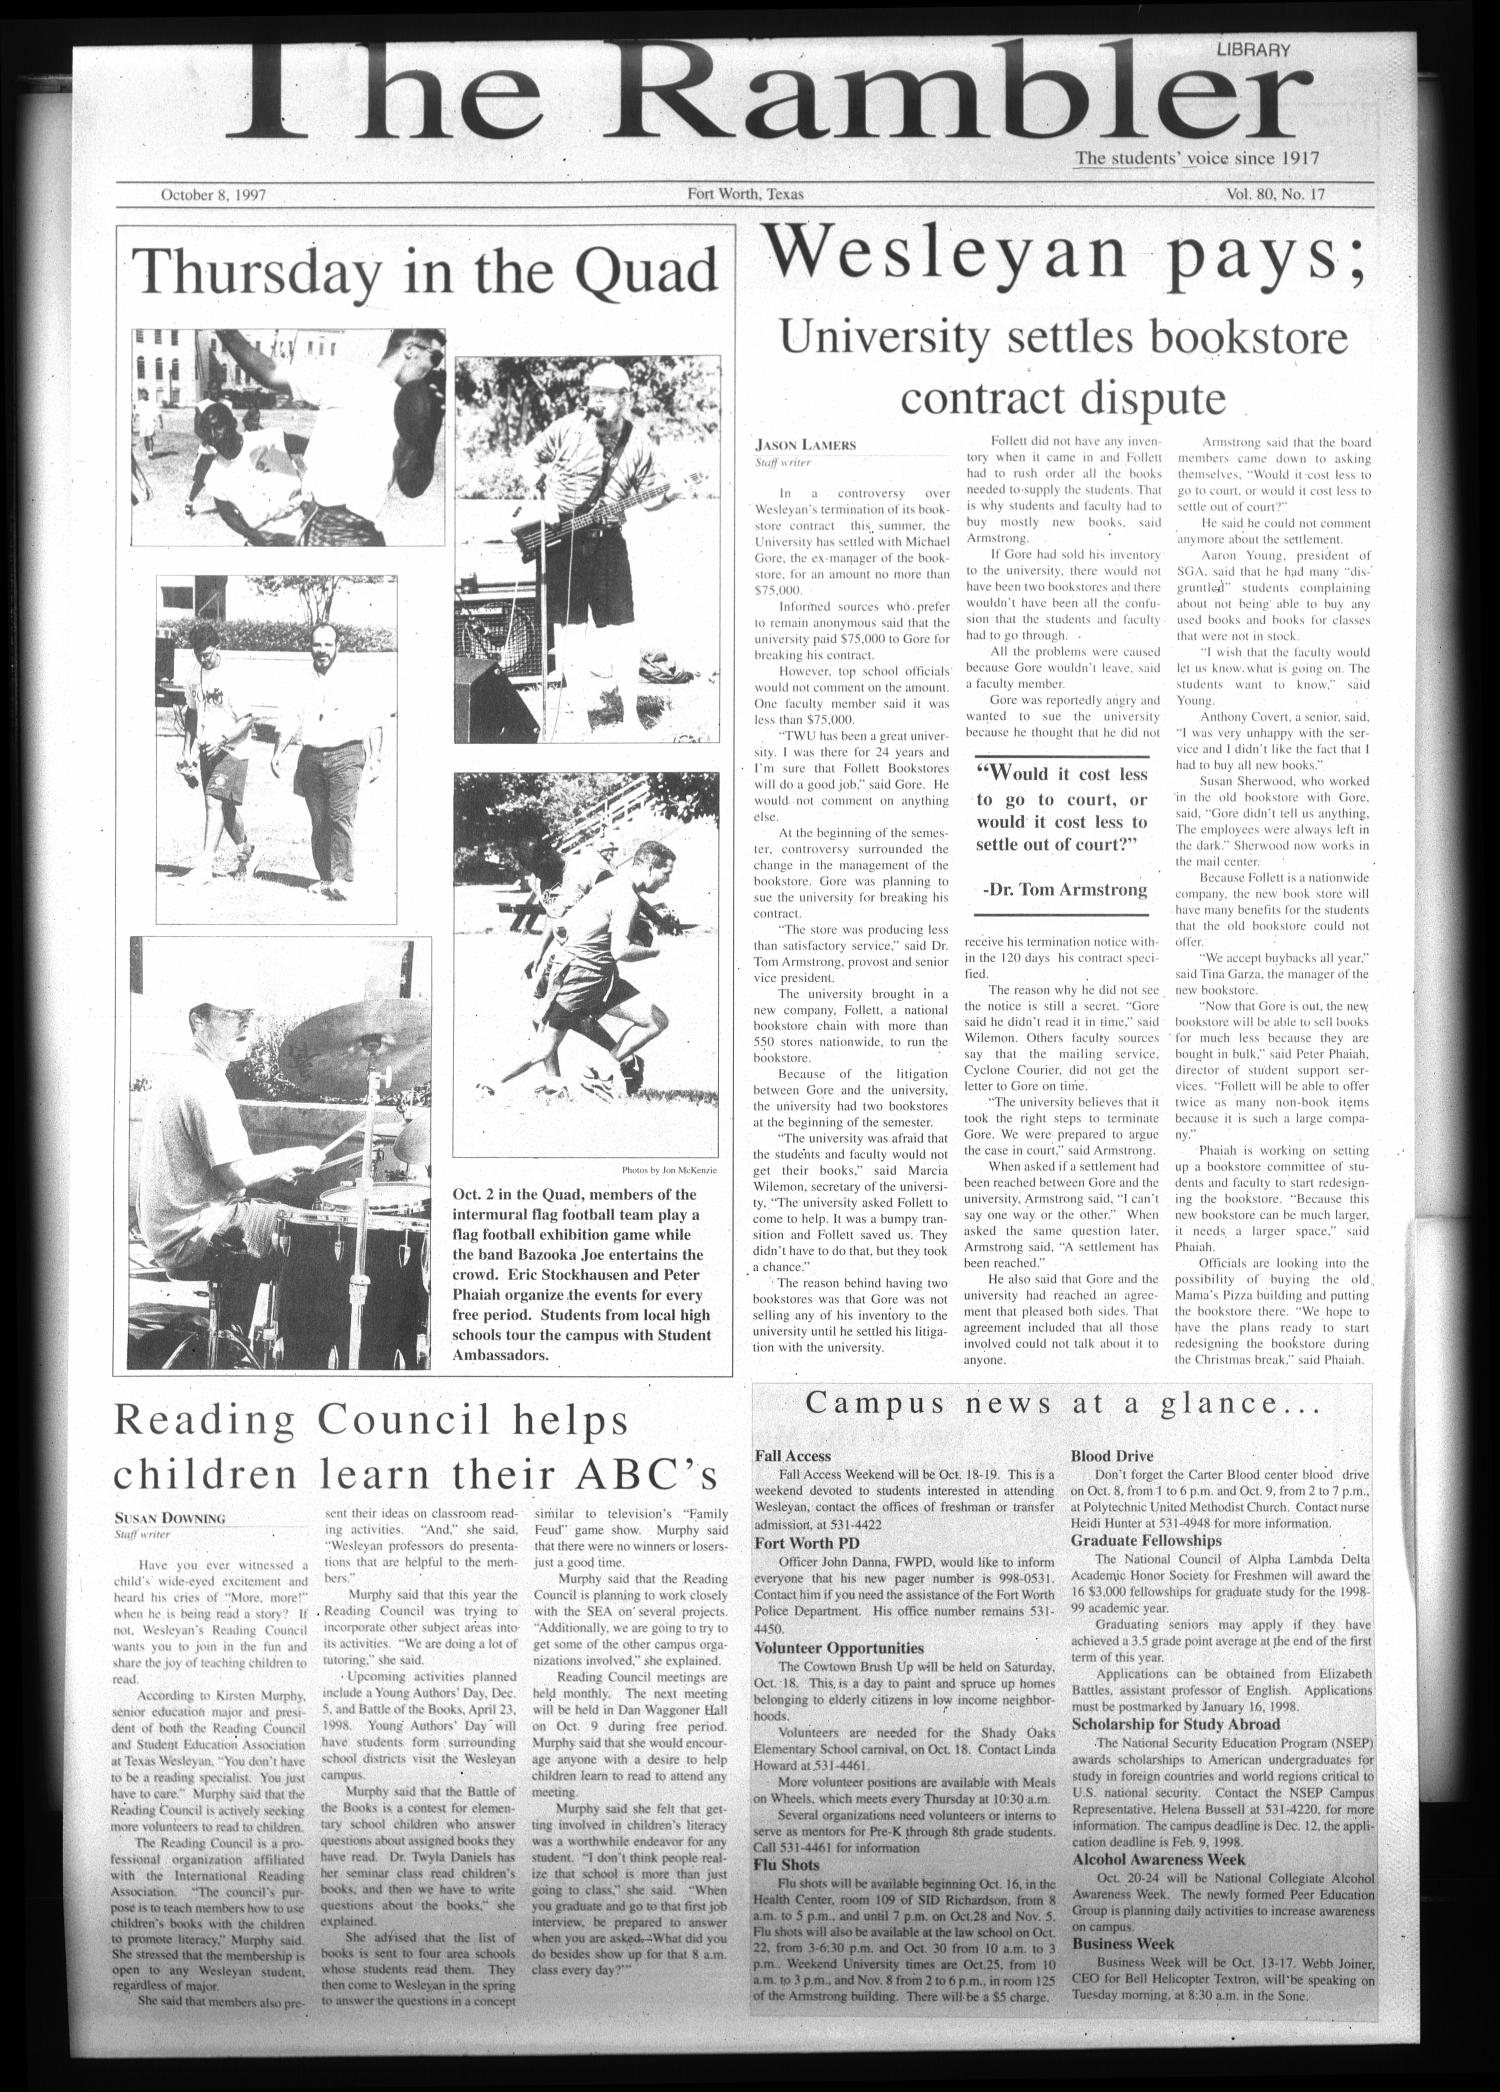 The Rambler (Fort Worth, Tex.), Vol. 80, No. 17, Ed. 1 Wednesday, October 8, 1997                                                                                                      [Sequence #]: 1 of 4